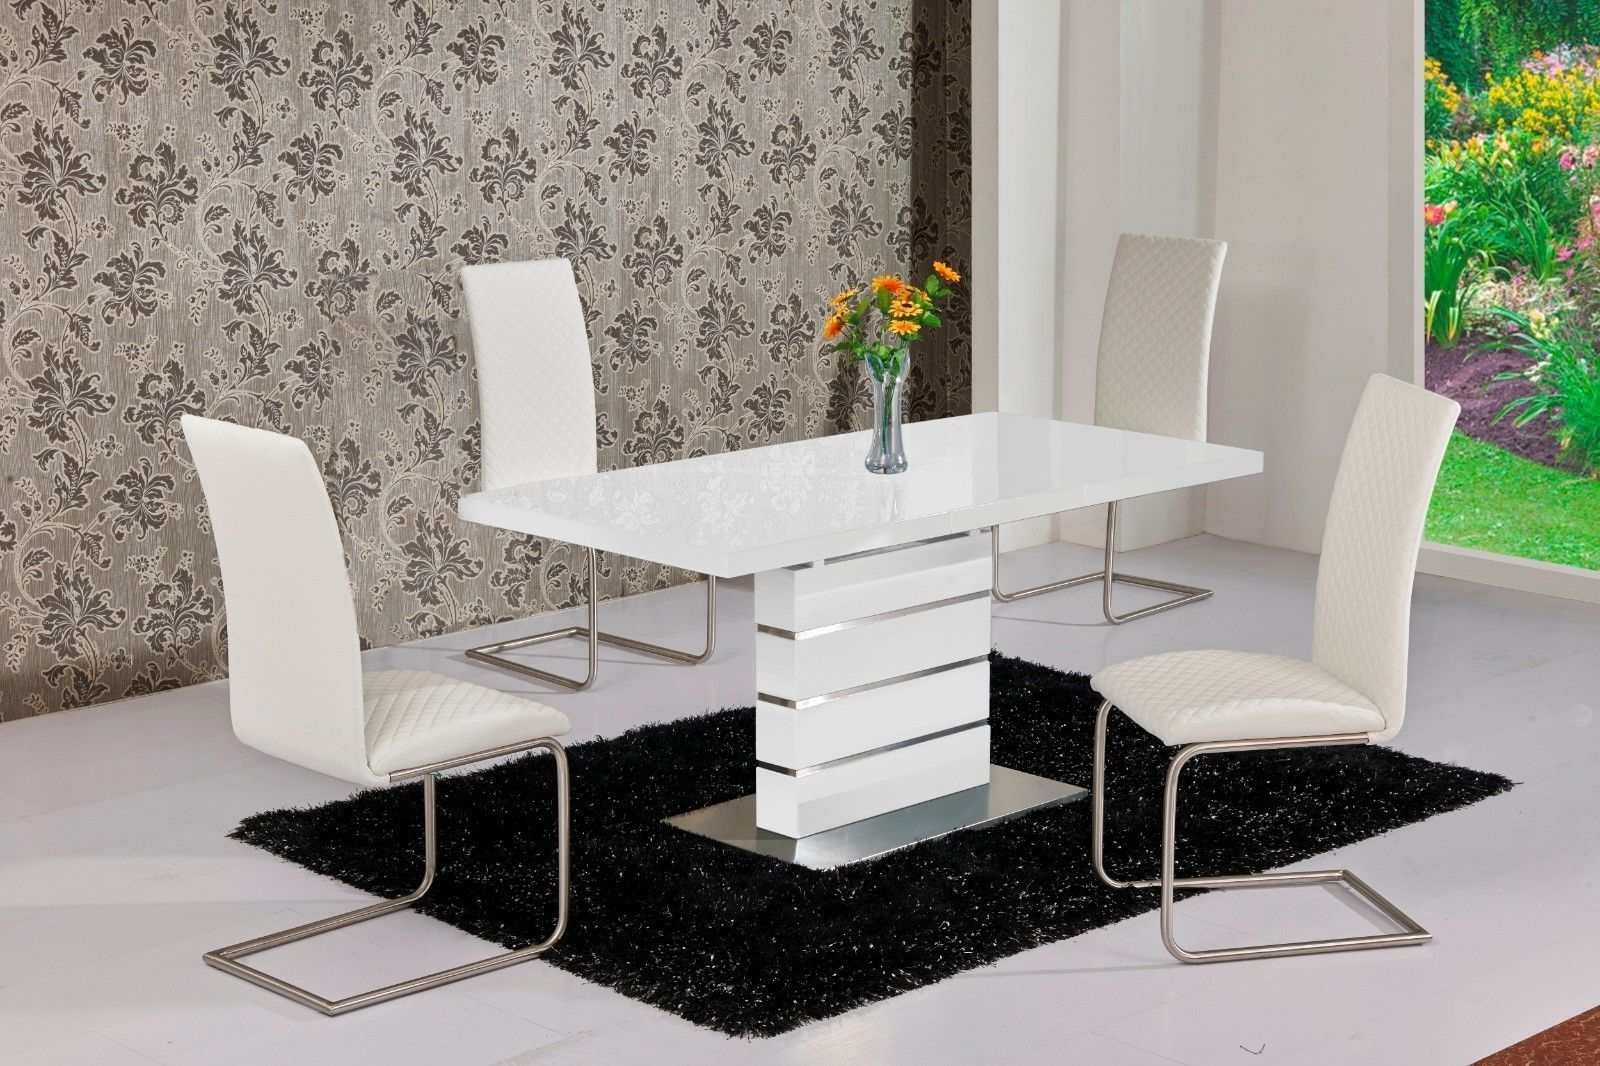 Gloss White Dining Tables With Regard To Most Recent Mace High Gloss Extending 120 160 Dining Table & Chair Set – White (Gallery 3 of 25)